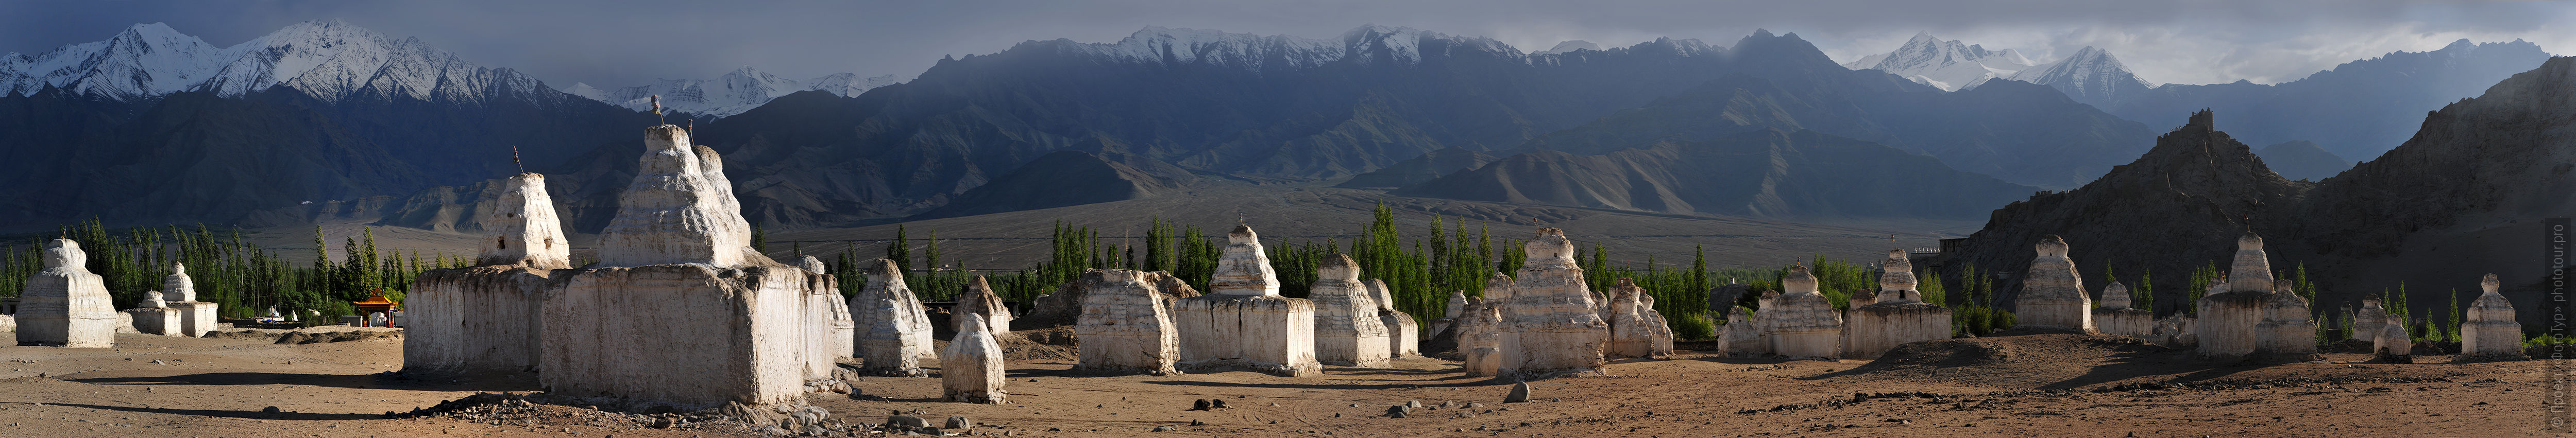 White stupas of Shay Gonpa. Tour Tibet Lakeside Advertising: Alpine lakes, geyser valley, Lamayuru, Colored Mountains, 01 - 10.09. 2021 year.